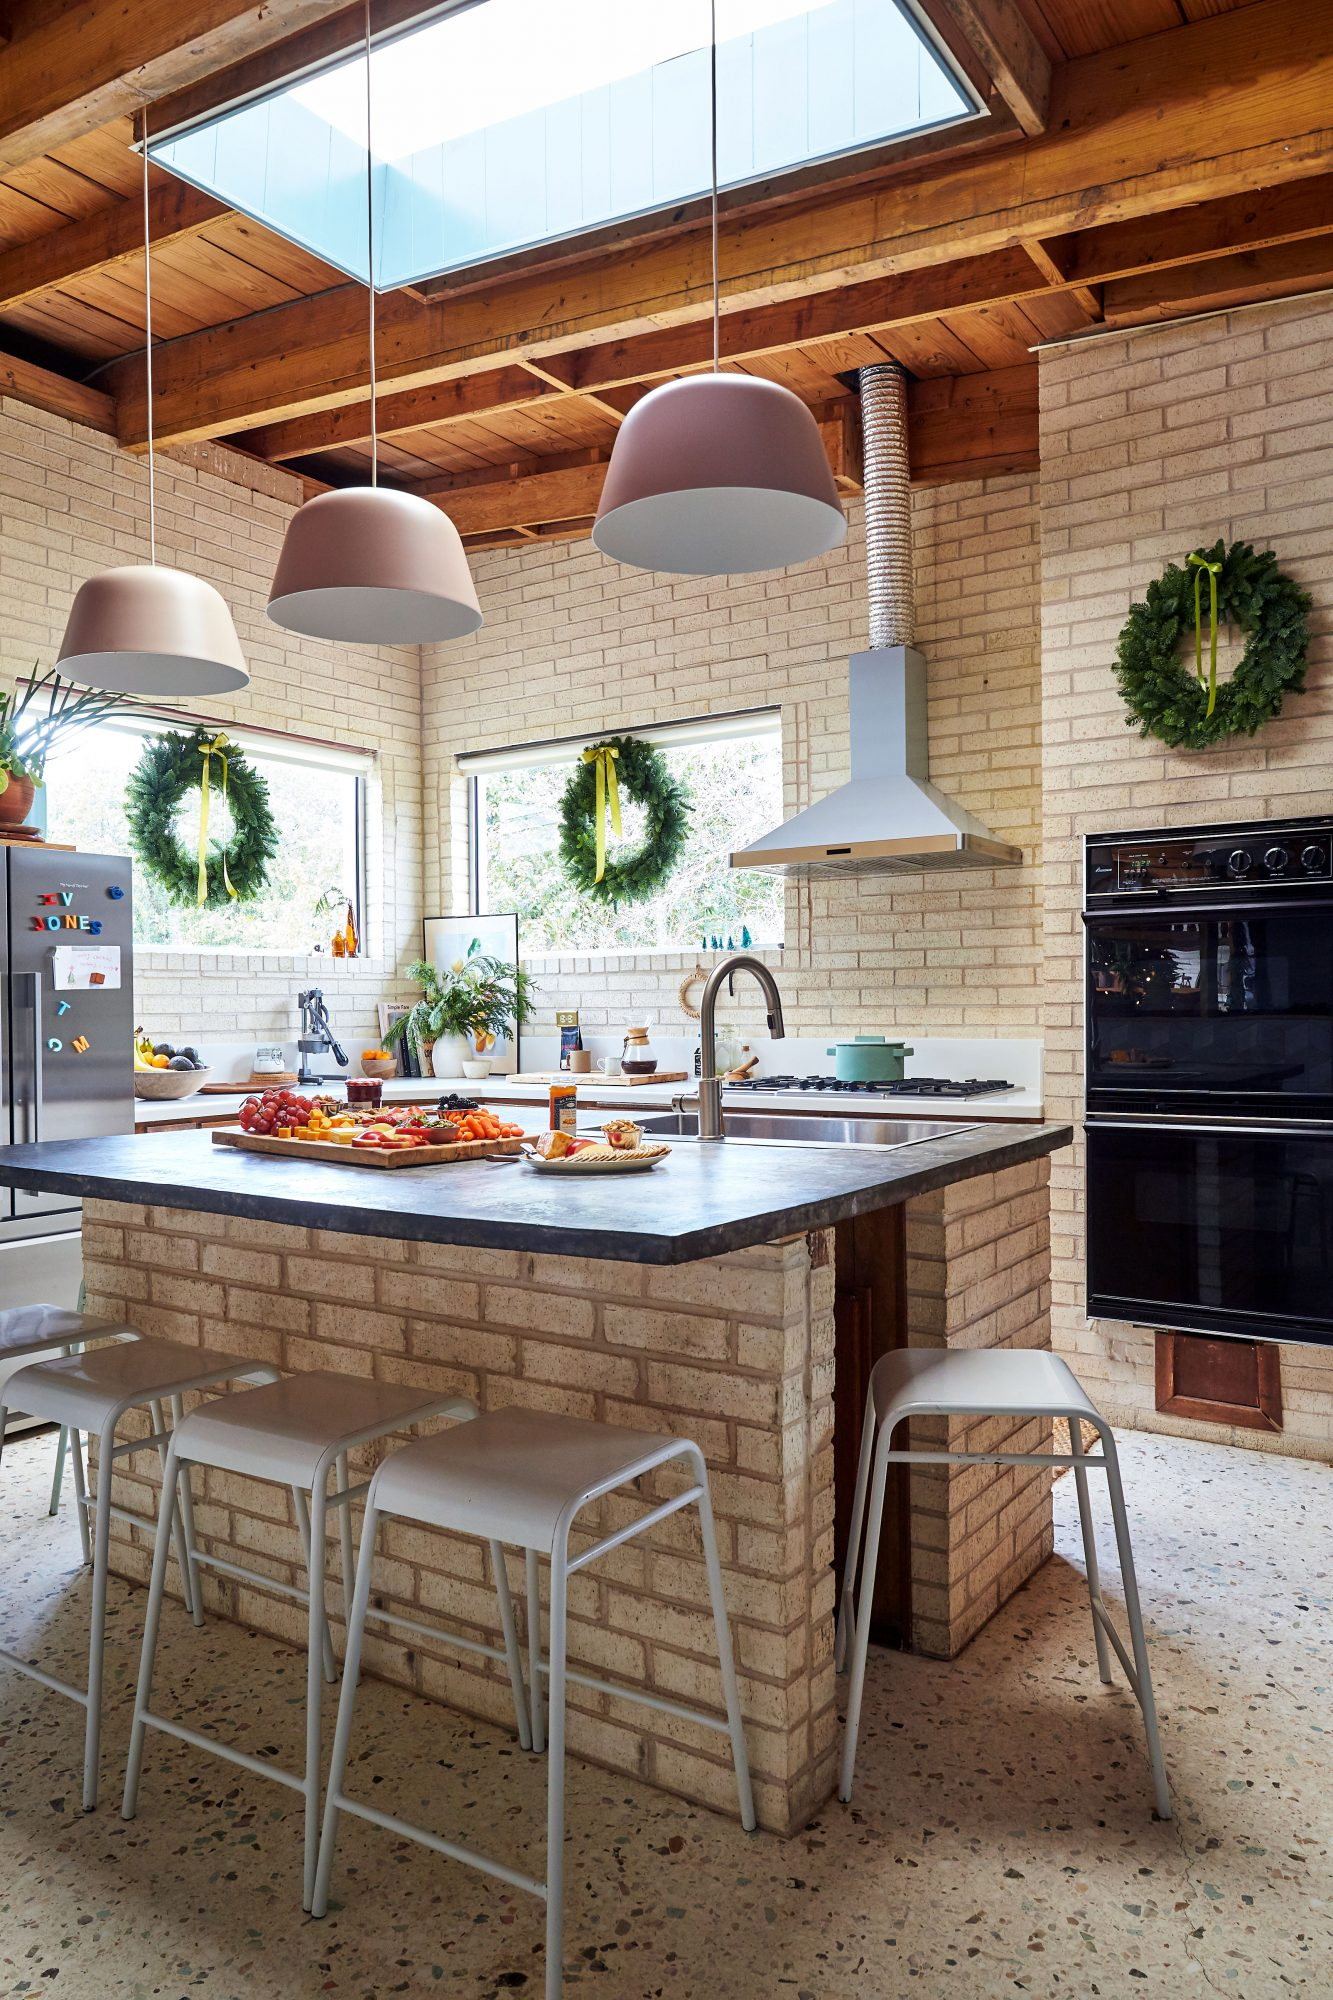 Sara and Billy Jack Brawner's Waco, TX Home at Christmas Kitchen